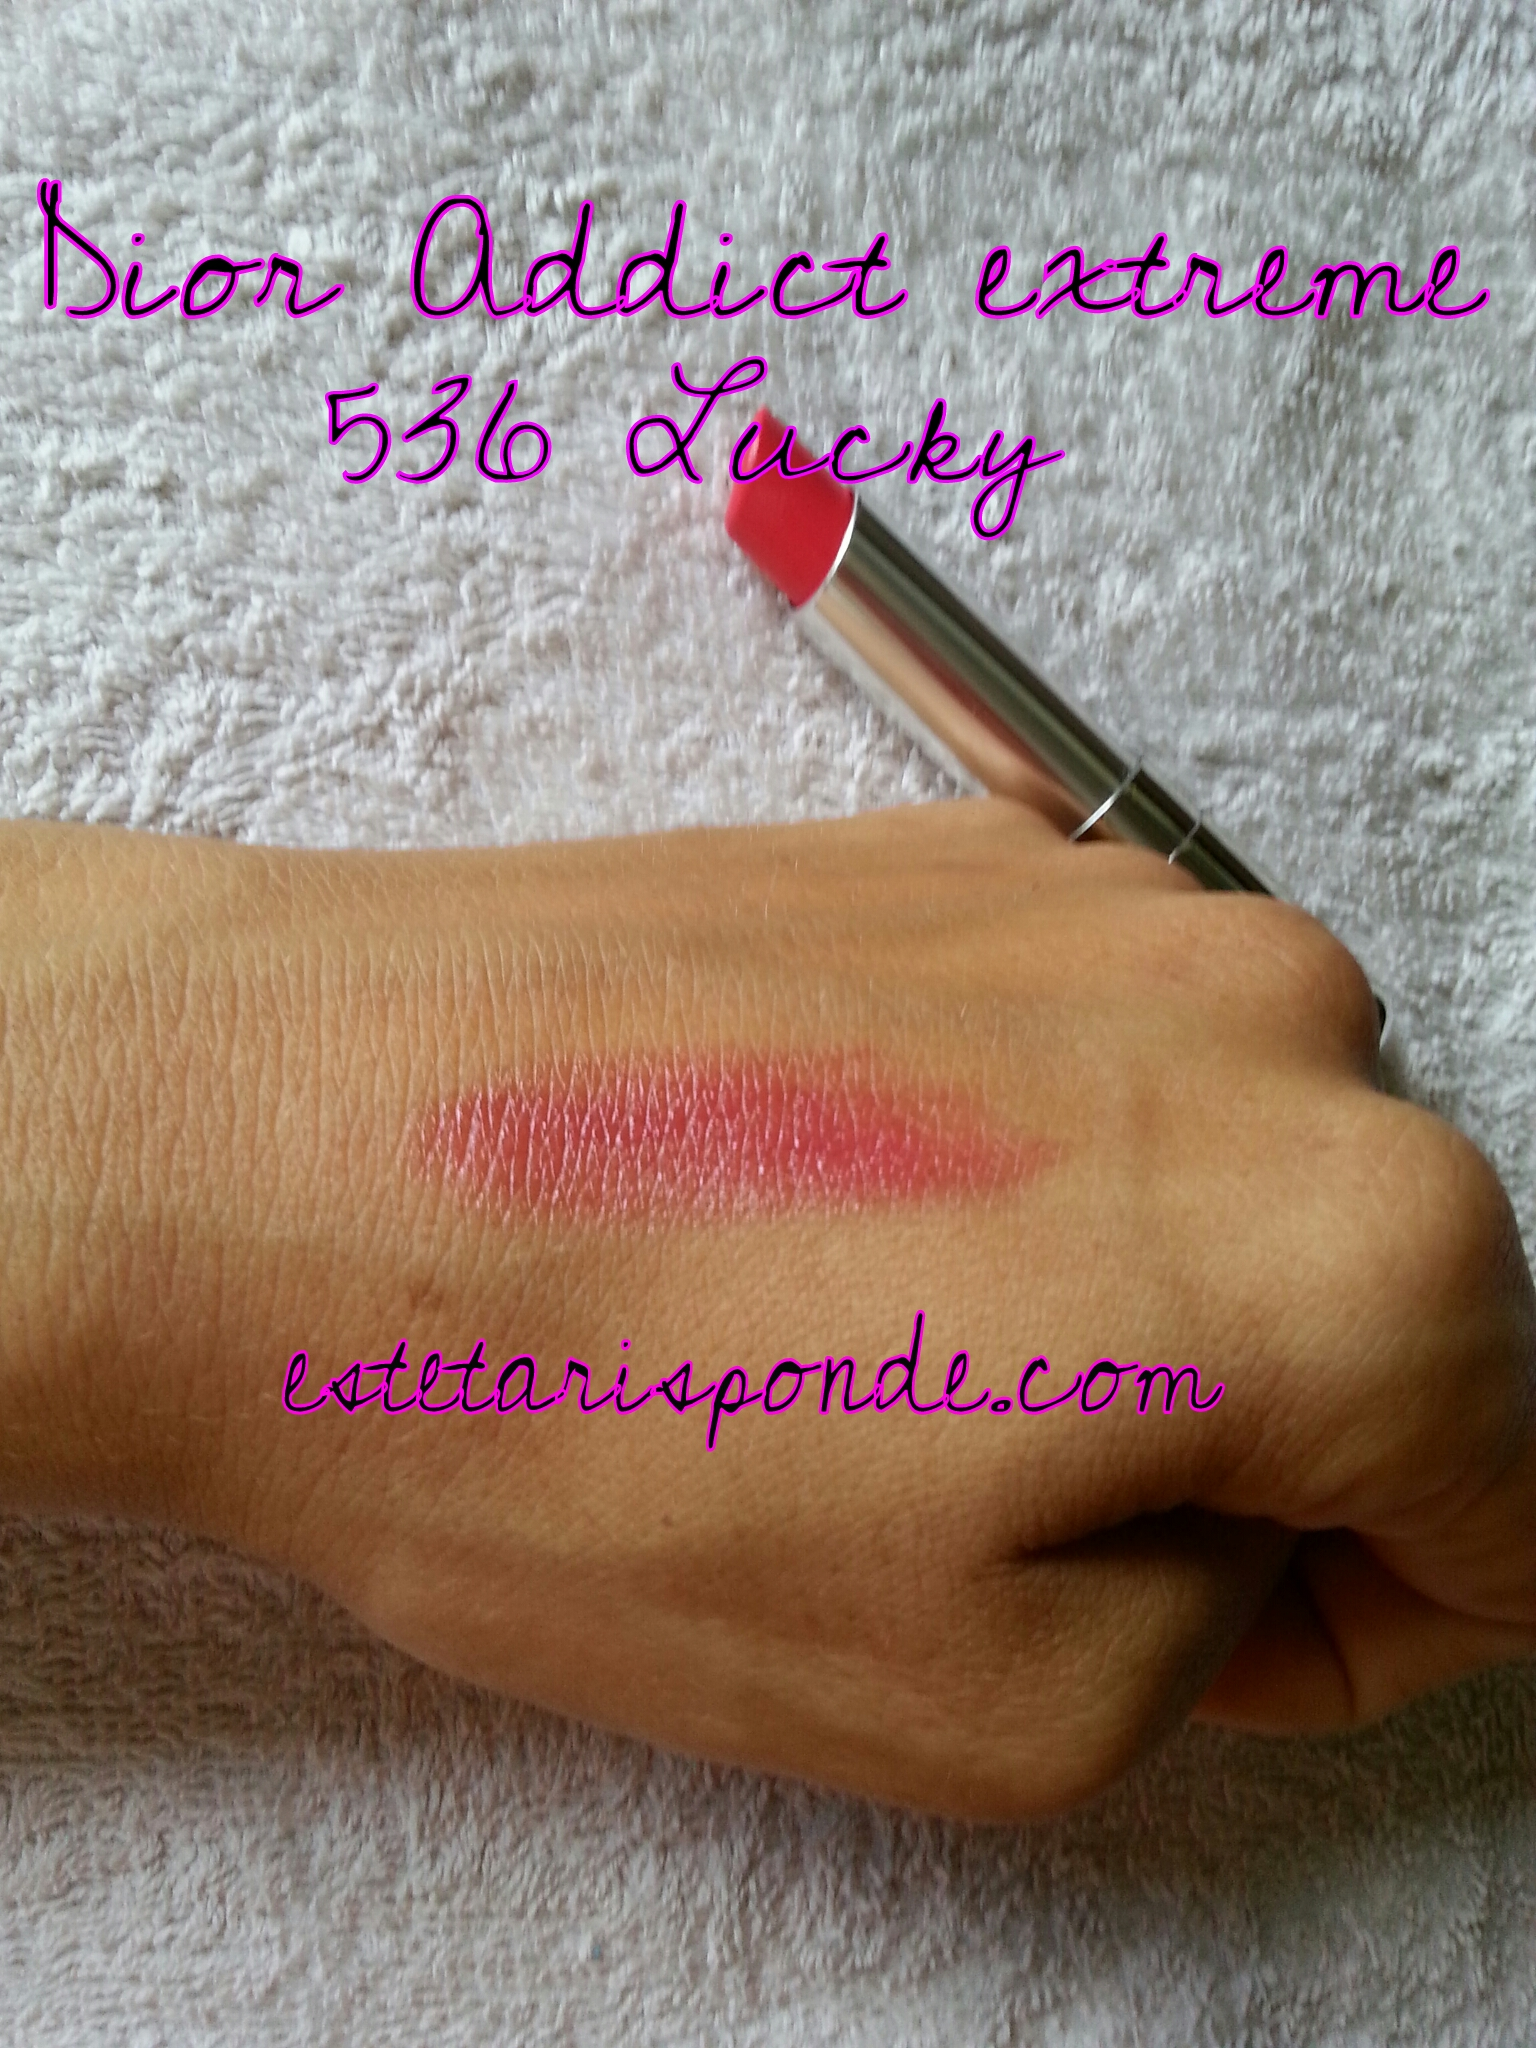 Dior addict extreme #536 lucky - swatch